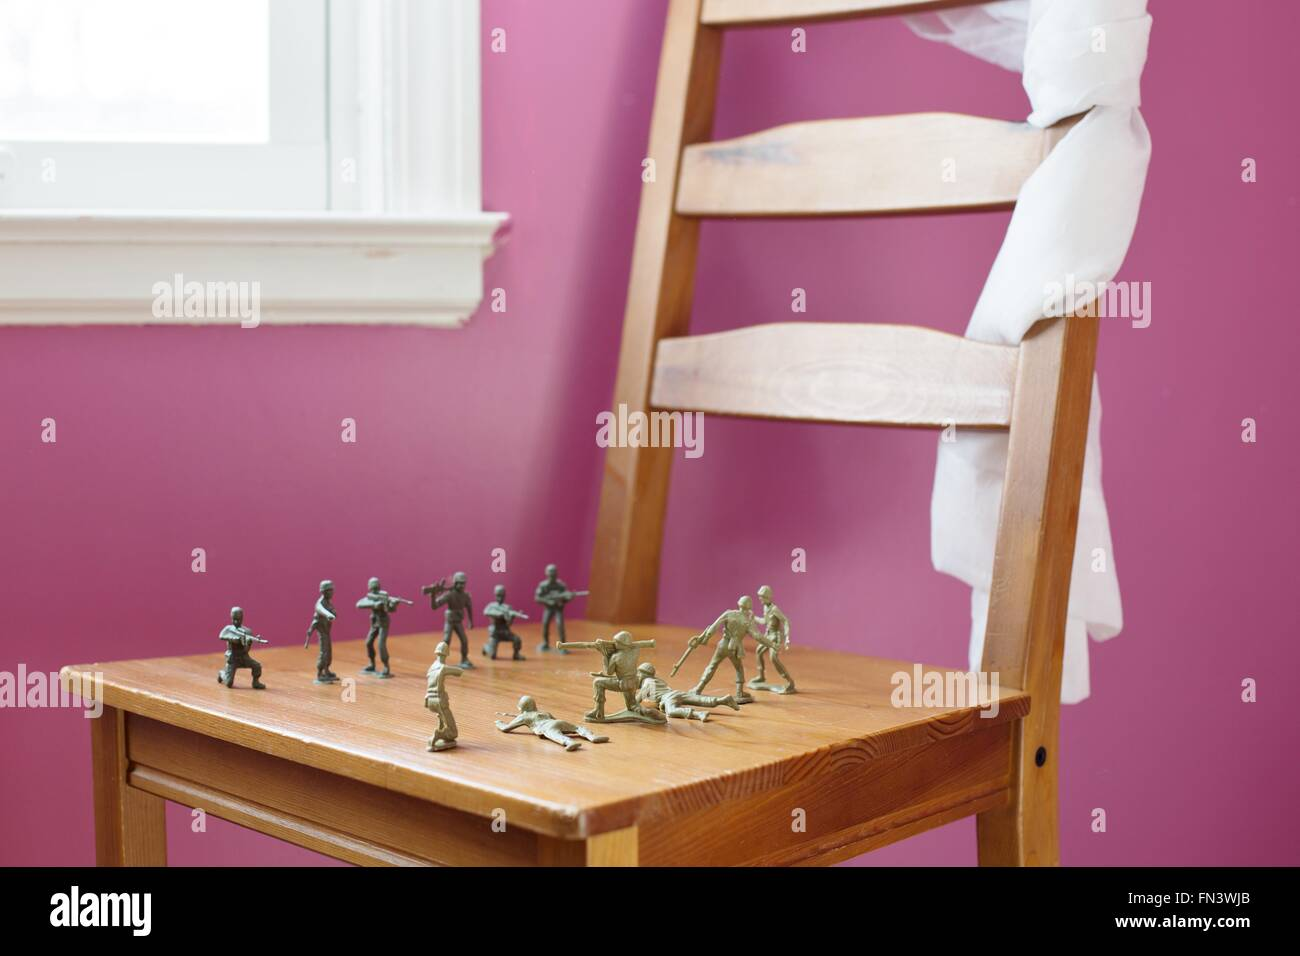 Plastic Toy Soldiers Lined Up For Battle On A Chair In A Pink Girly Stock Photo Alamy